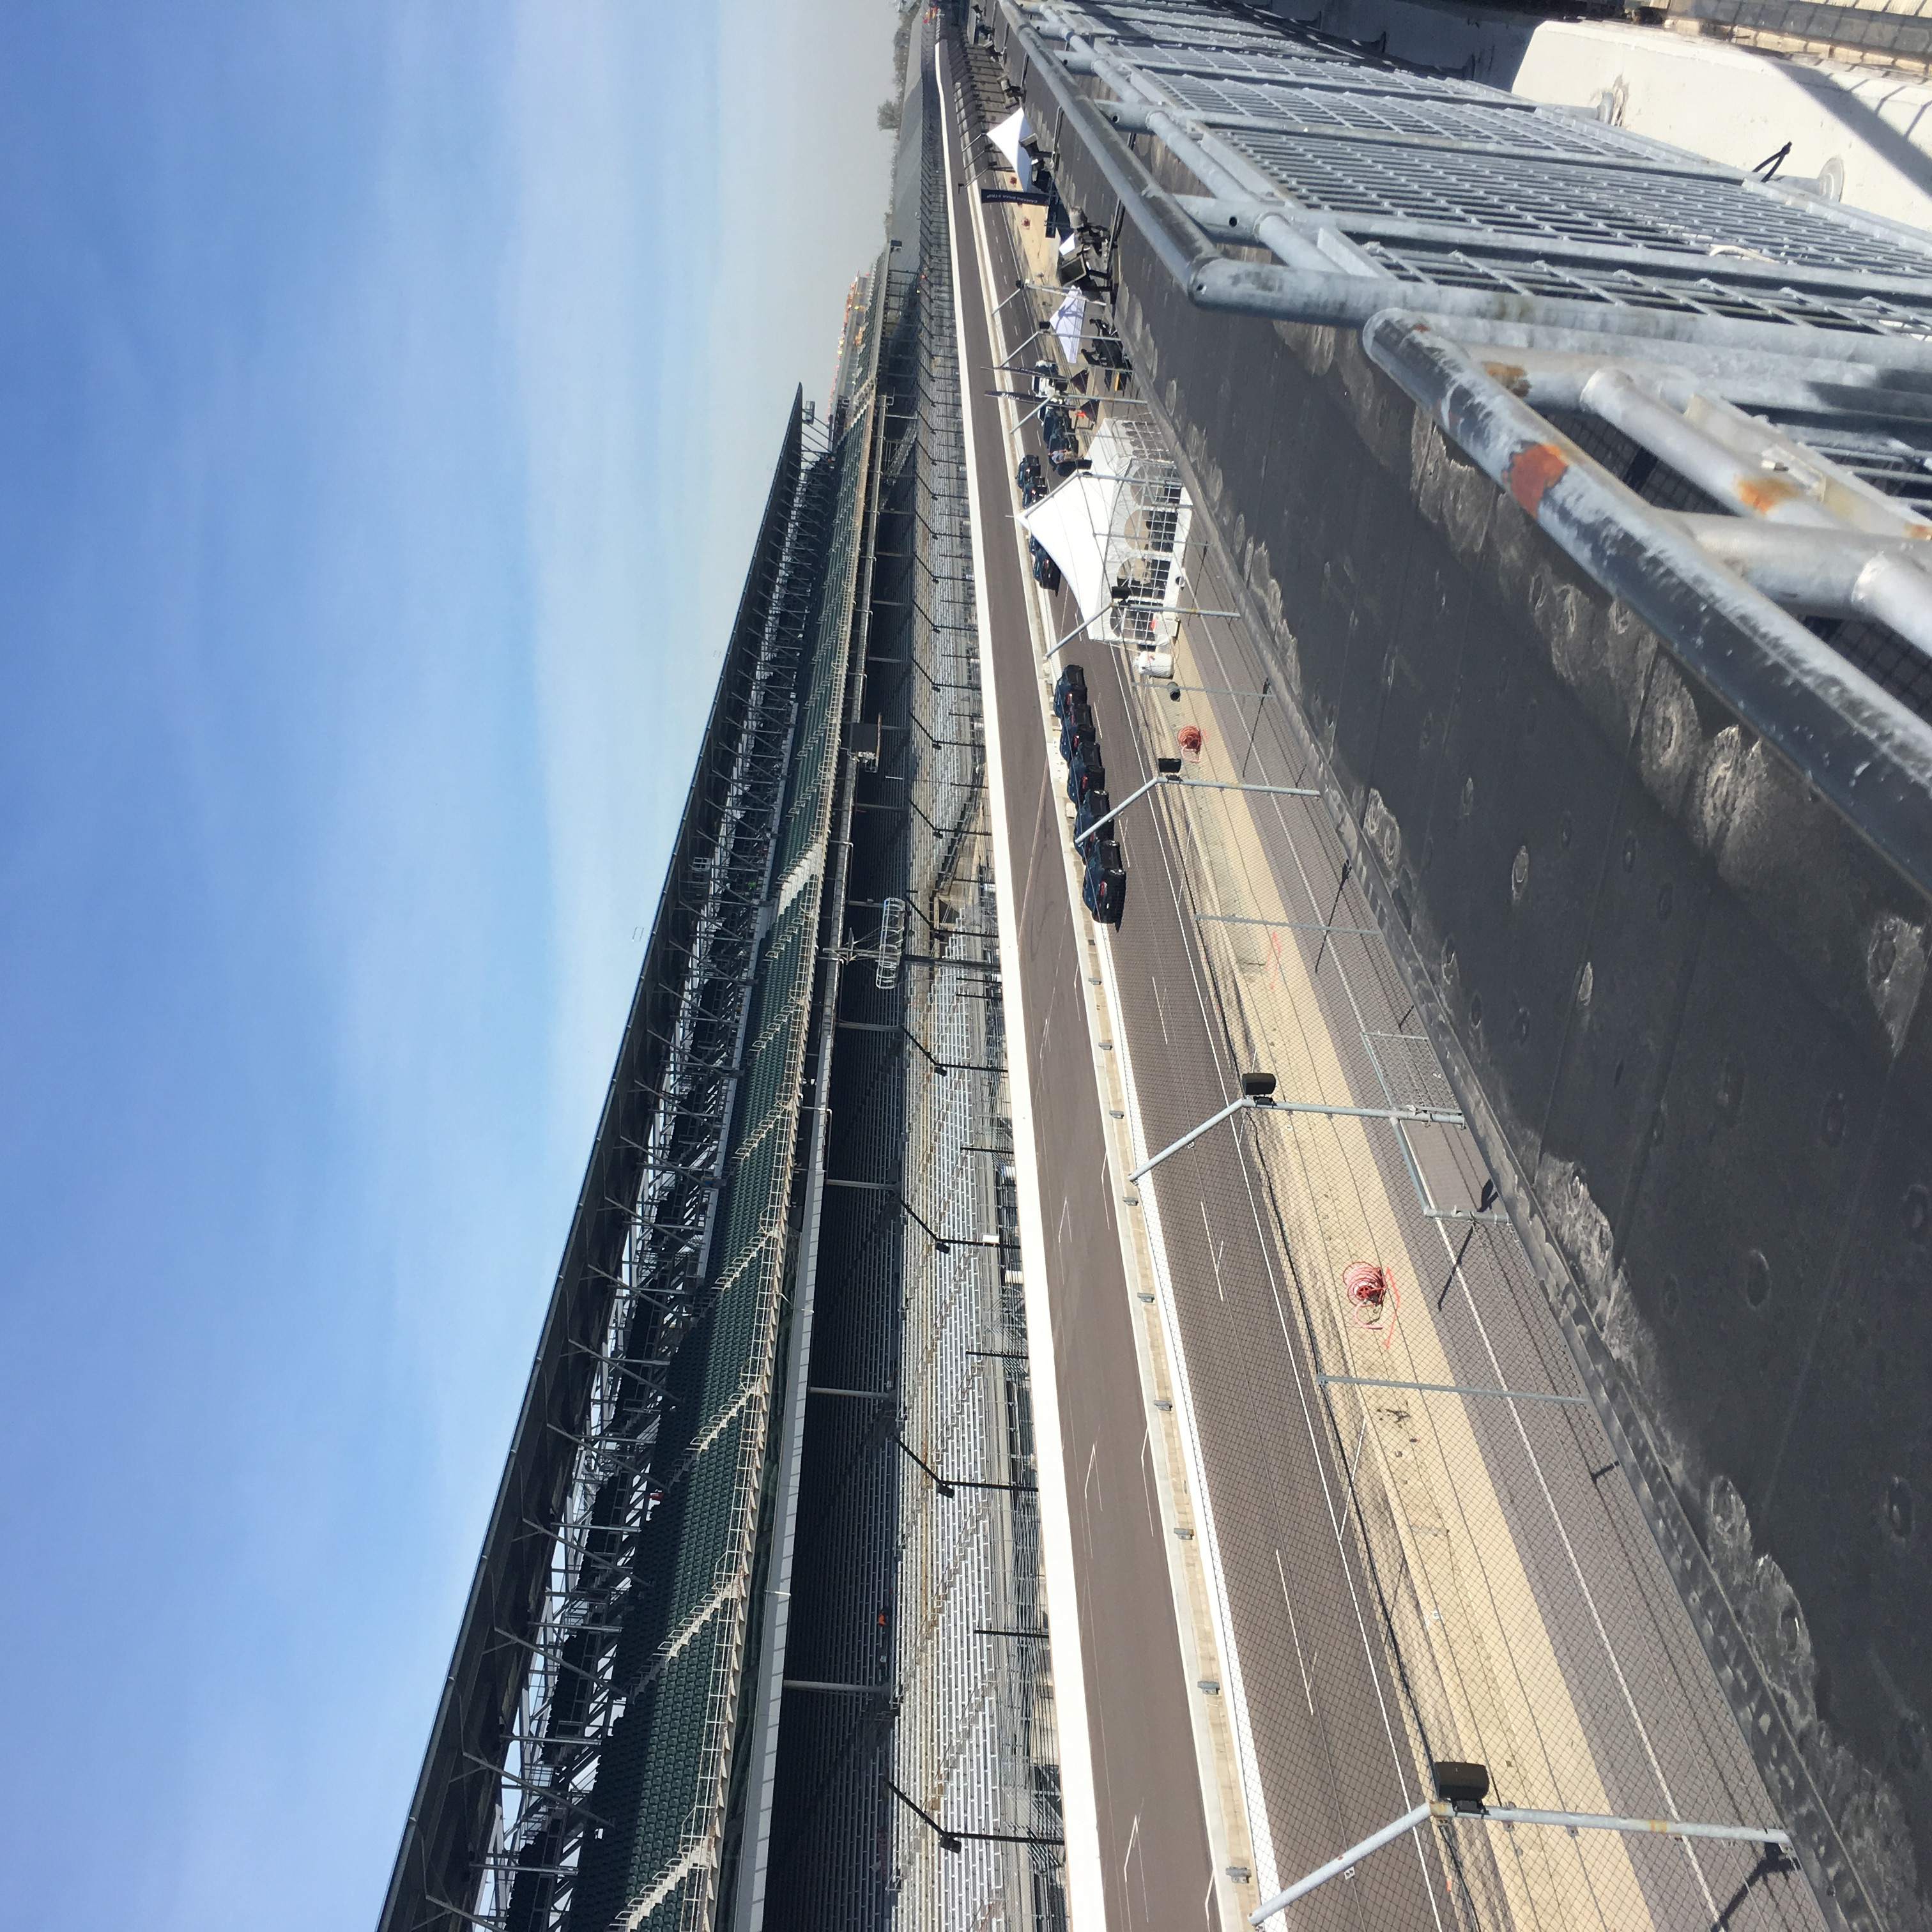 McGrath Is Off To The Races At The Indianapolis Motor